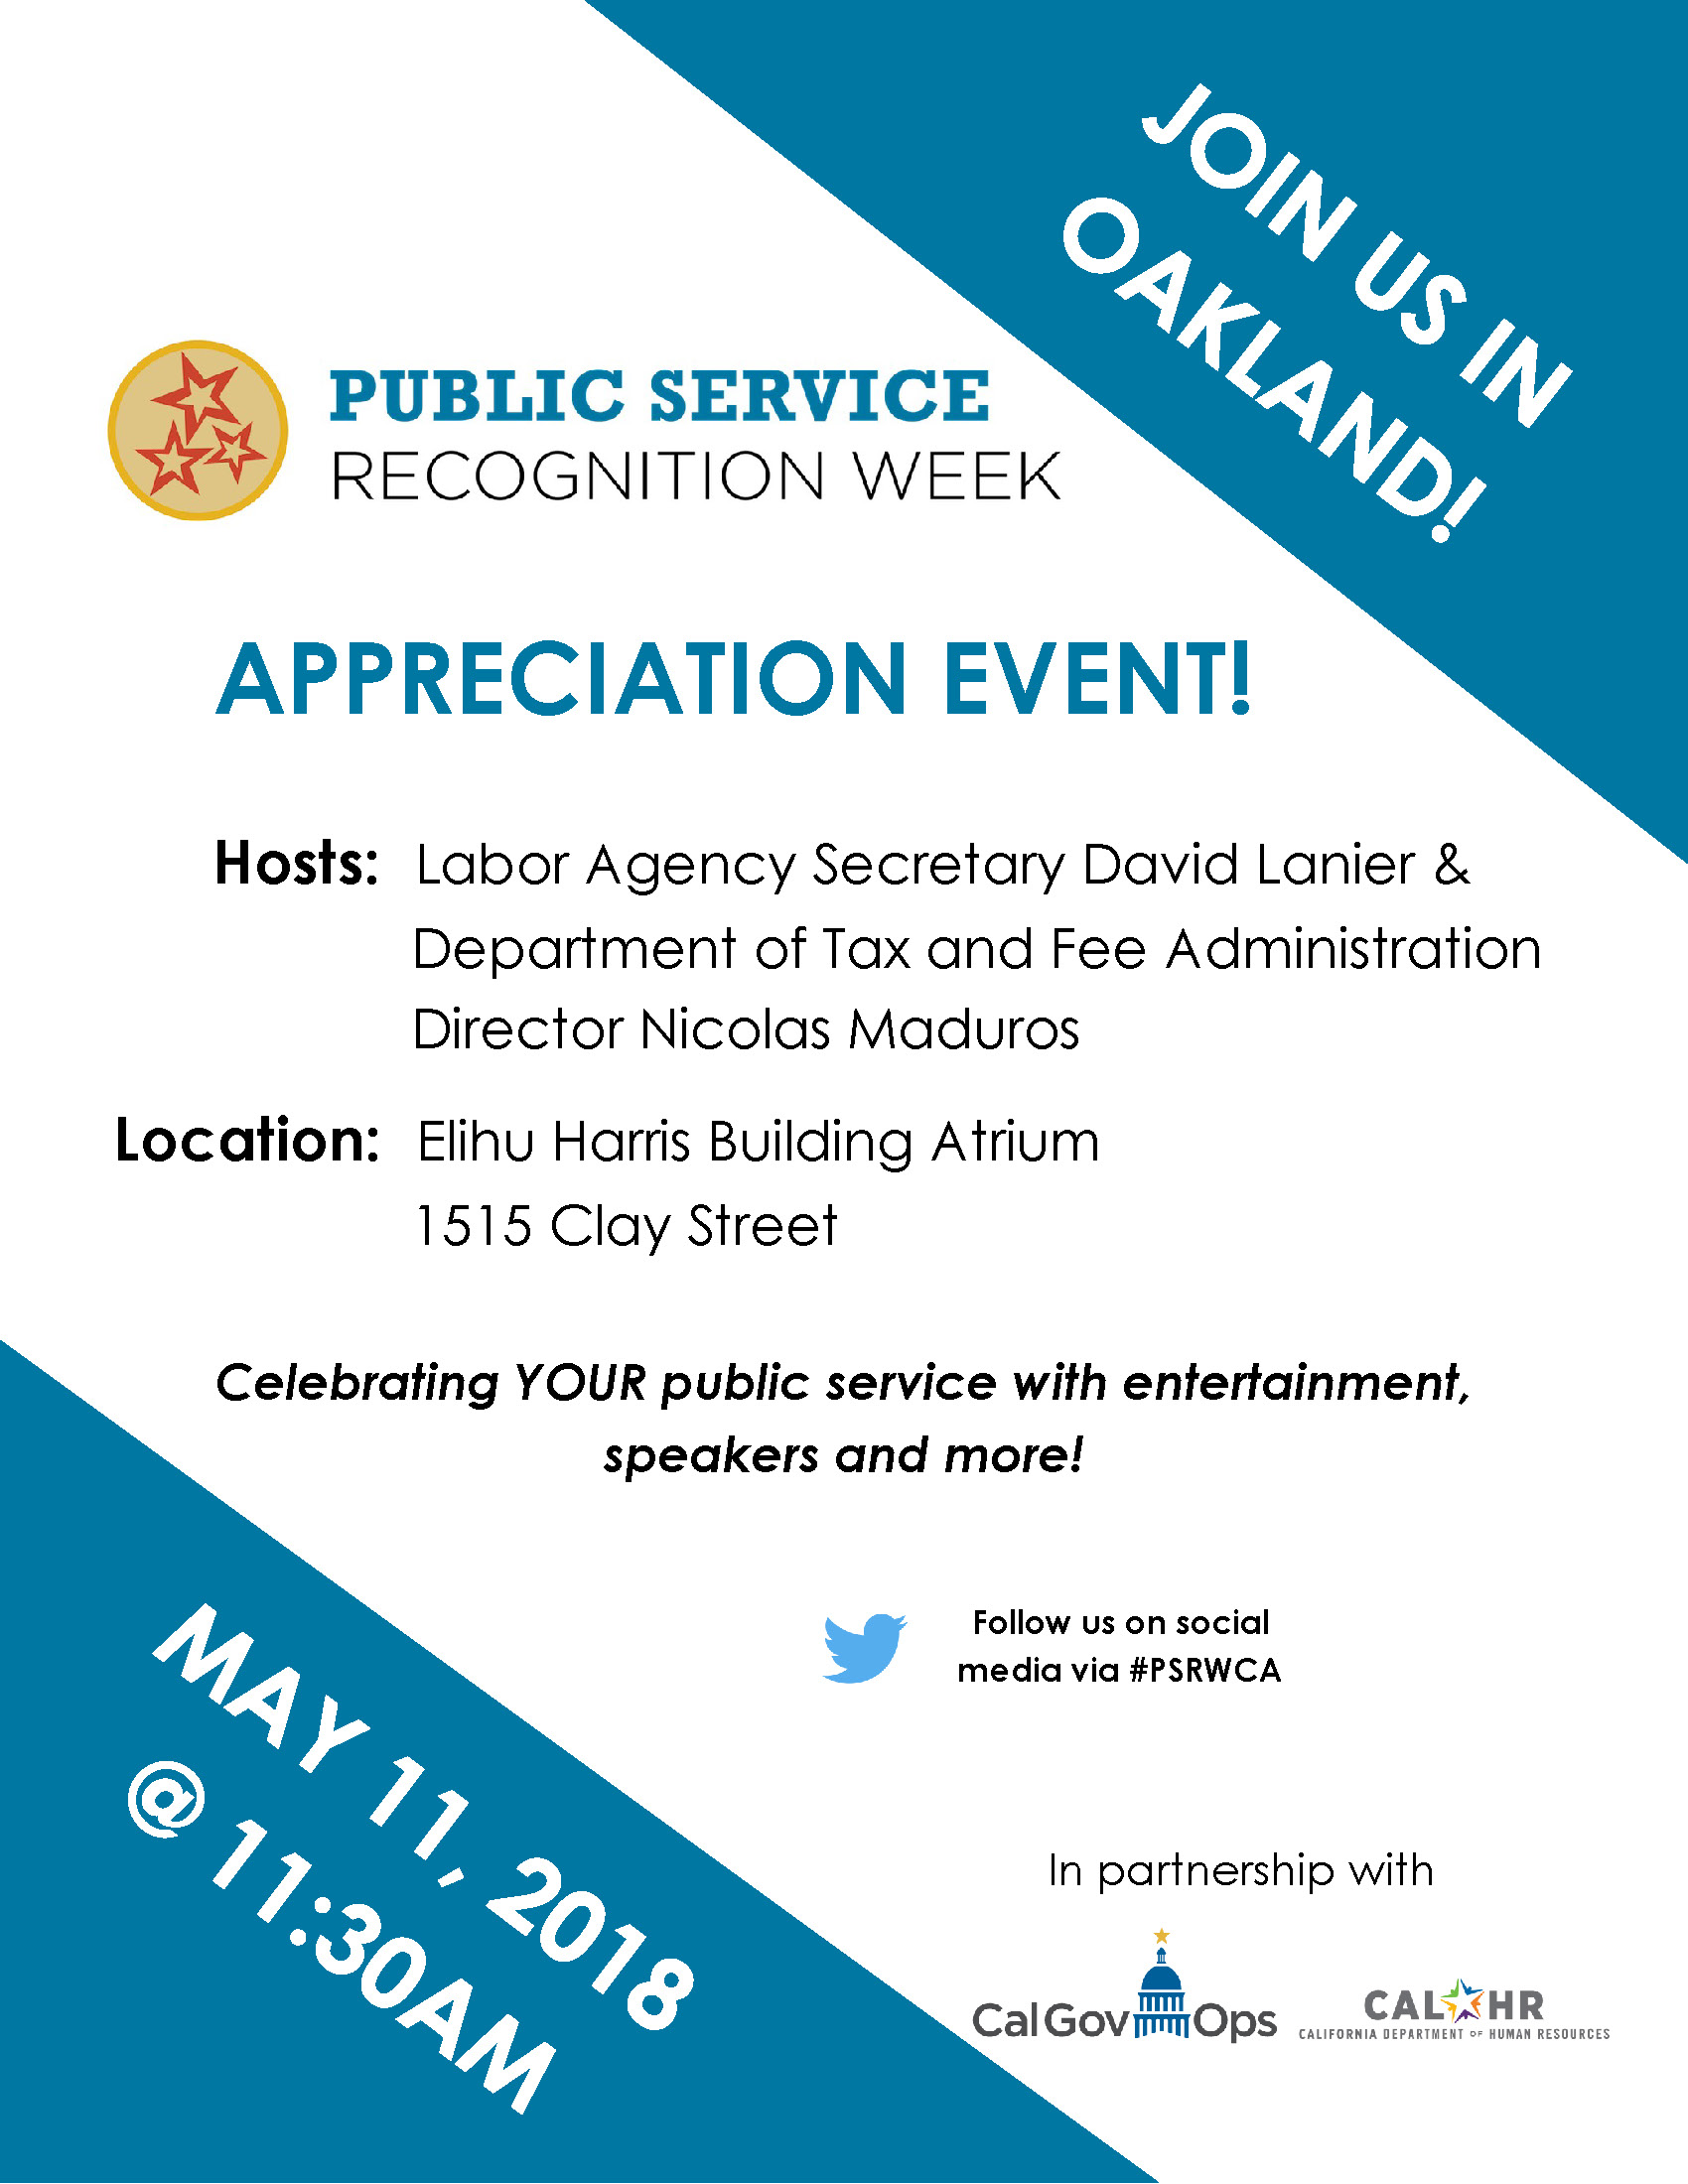 Public Service Recognition Week 2018 Oakland Flyer